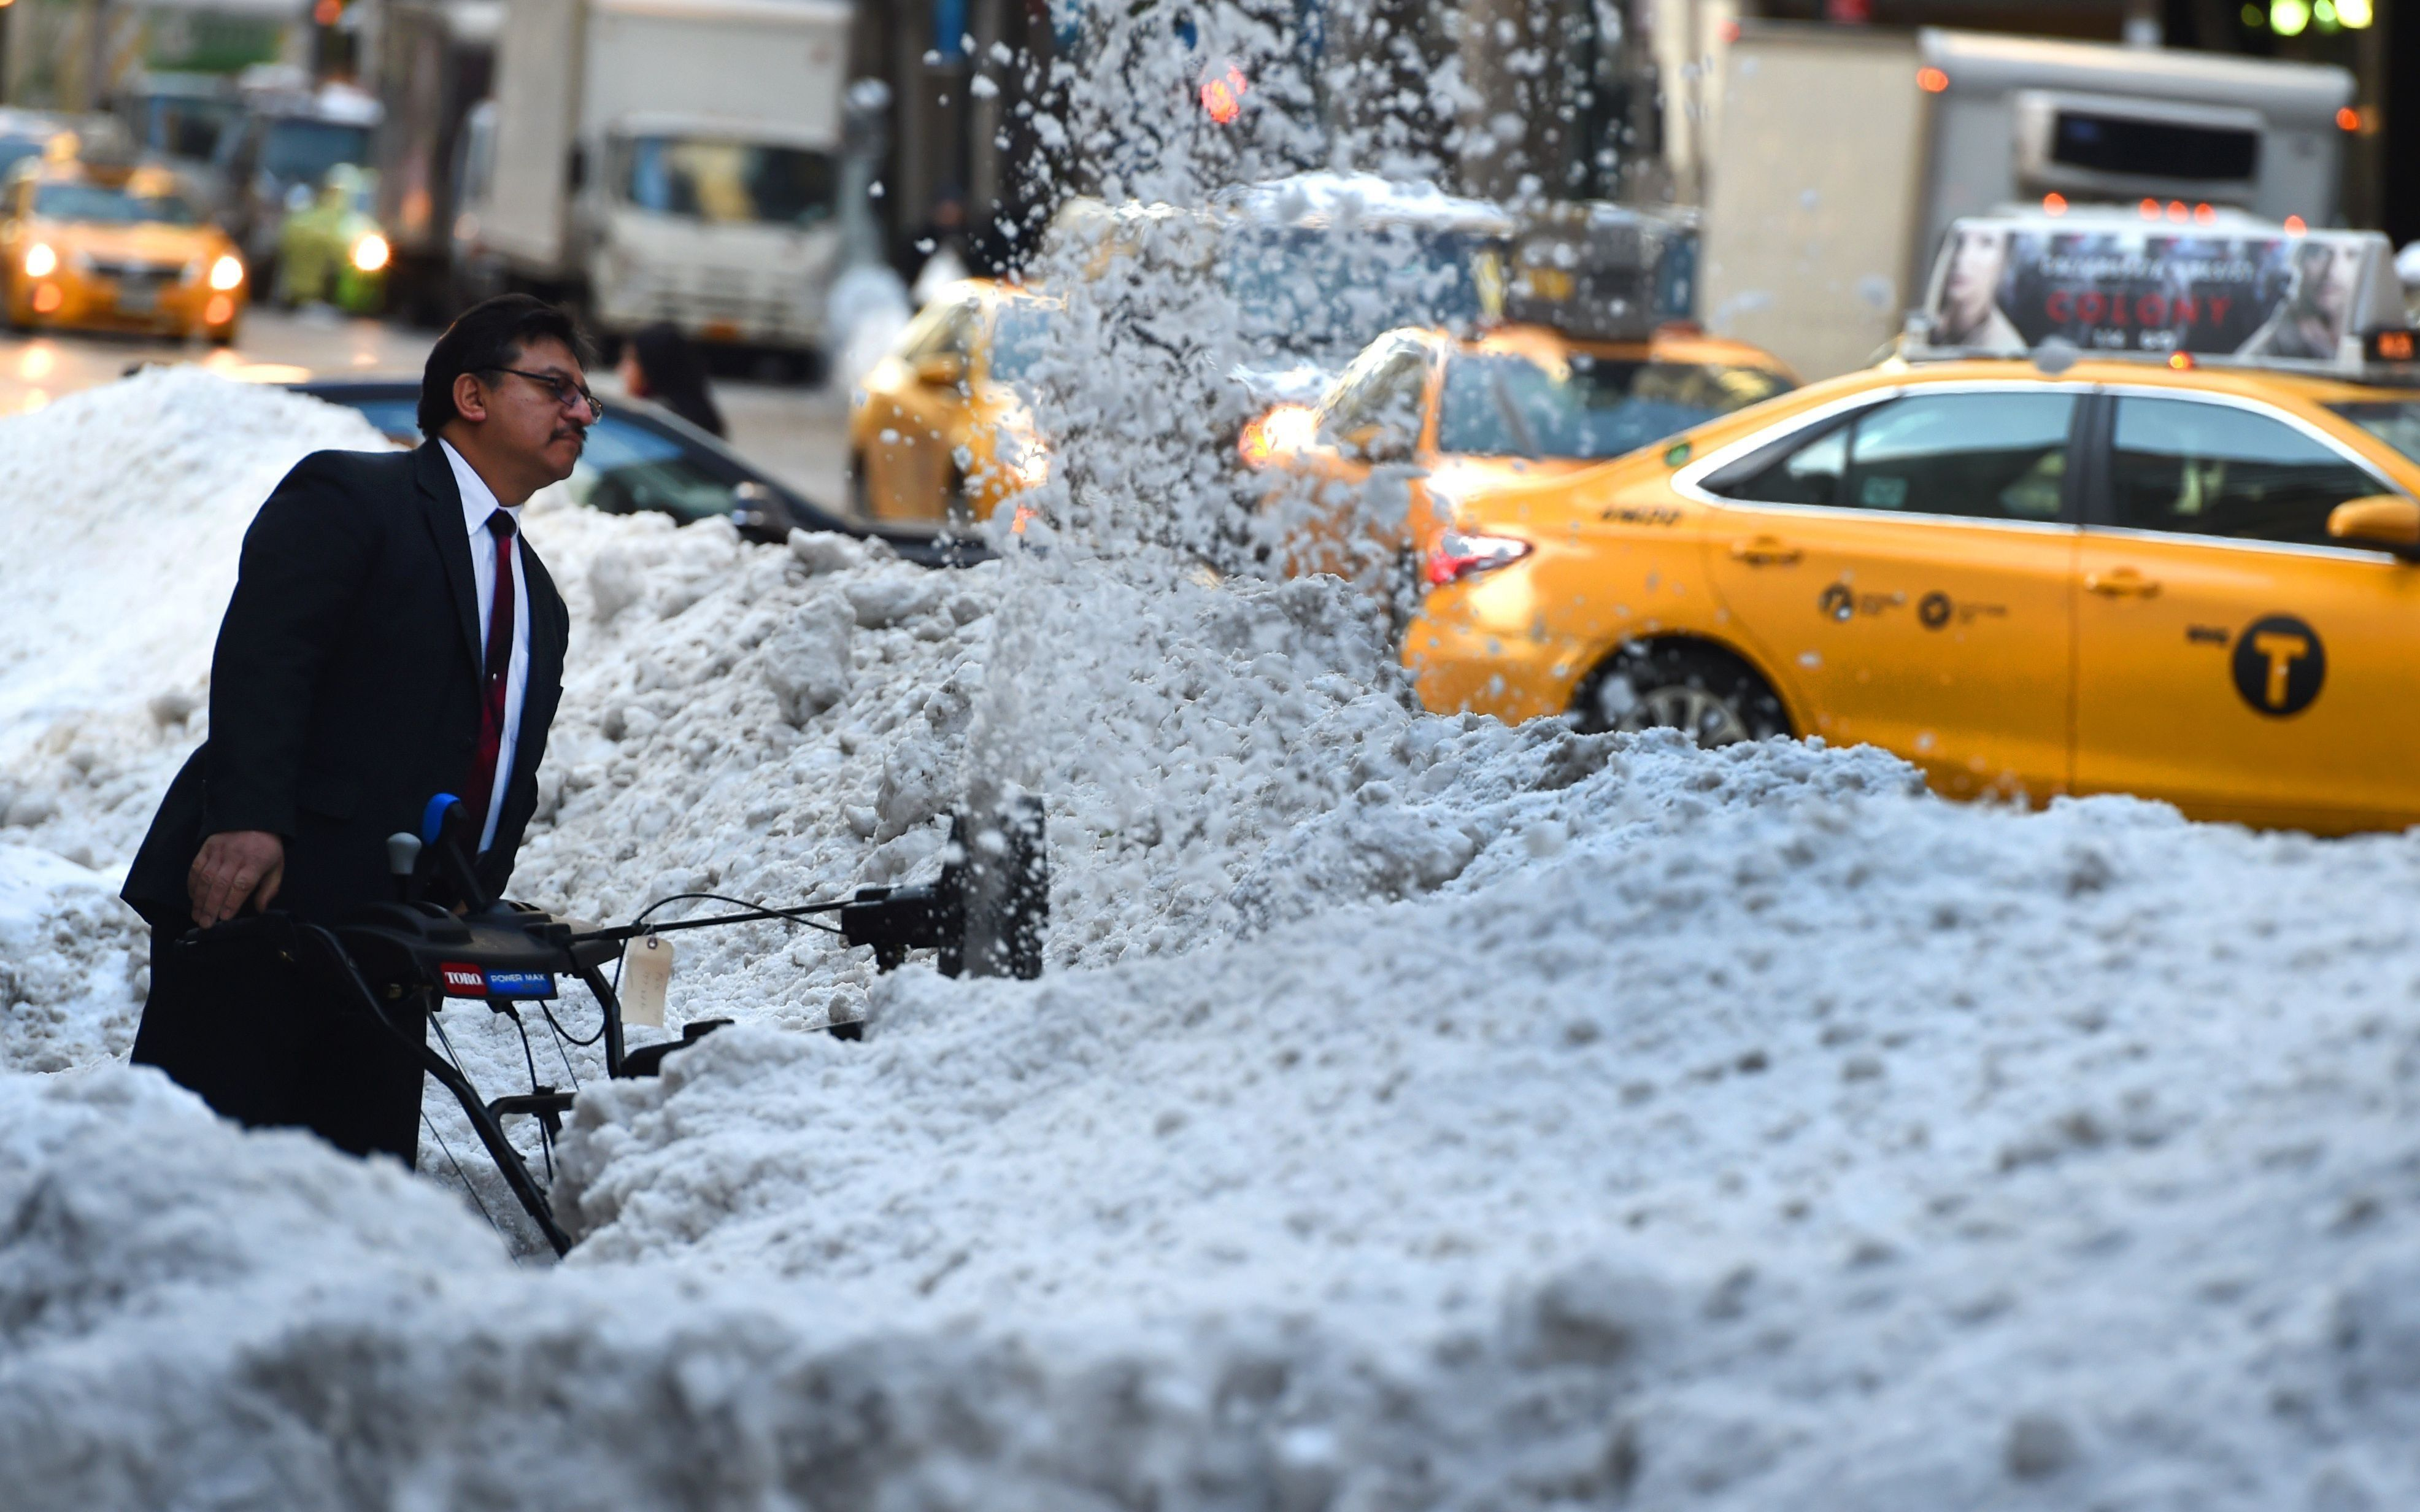 A worker clears snow on ThirdAvenue in New York City on Jan.25, 2016, as New Yorkers return to work after a recor